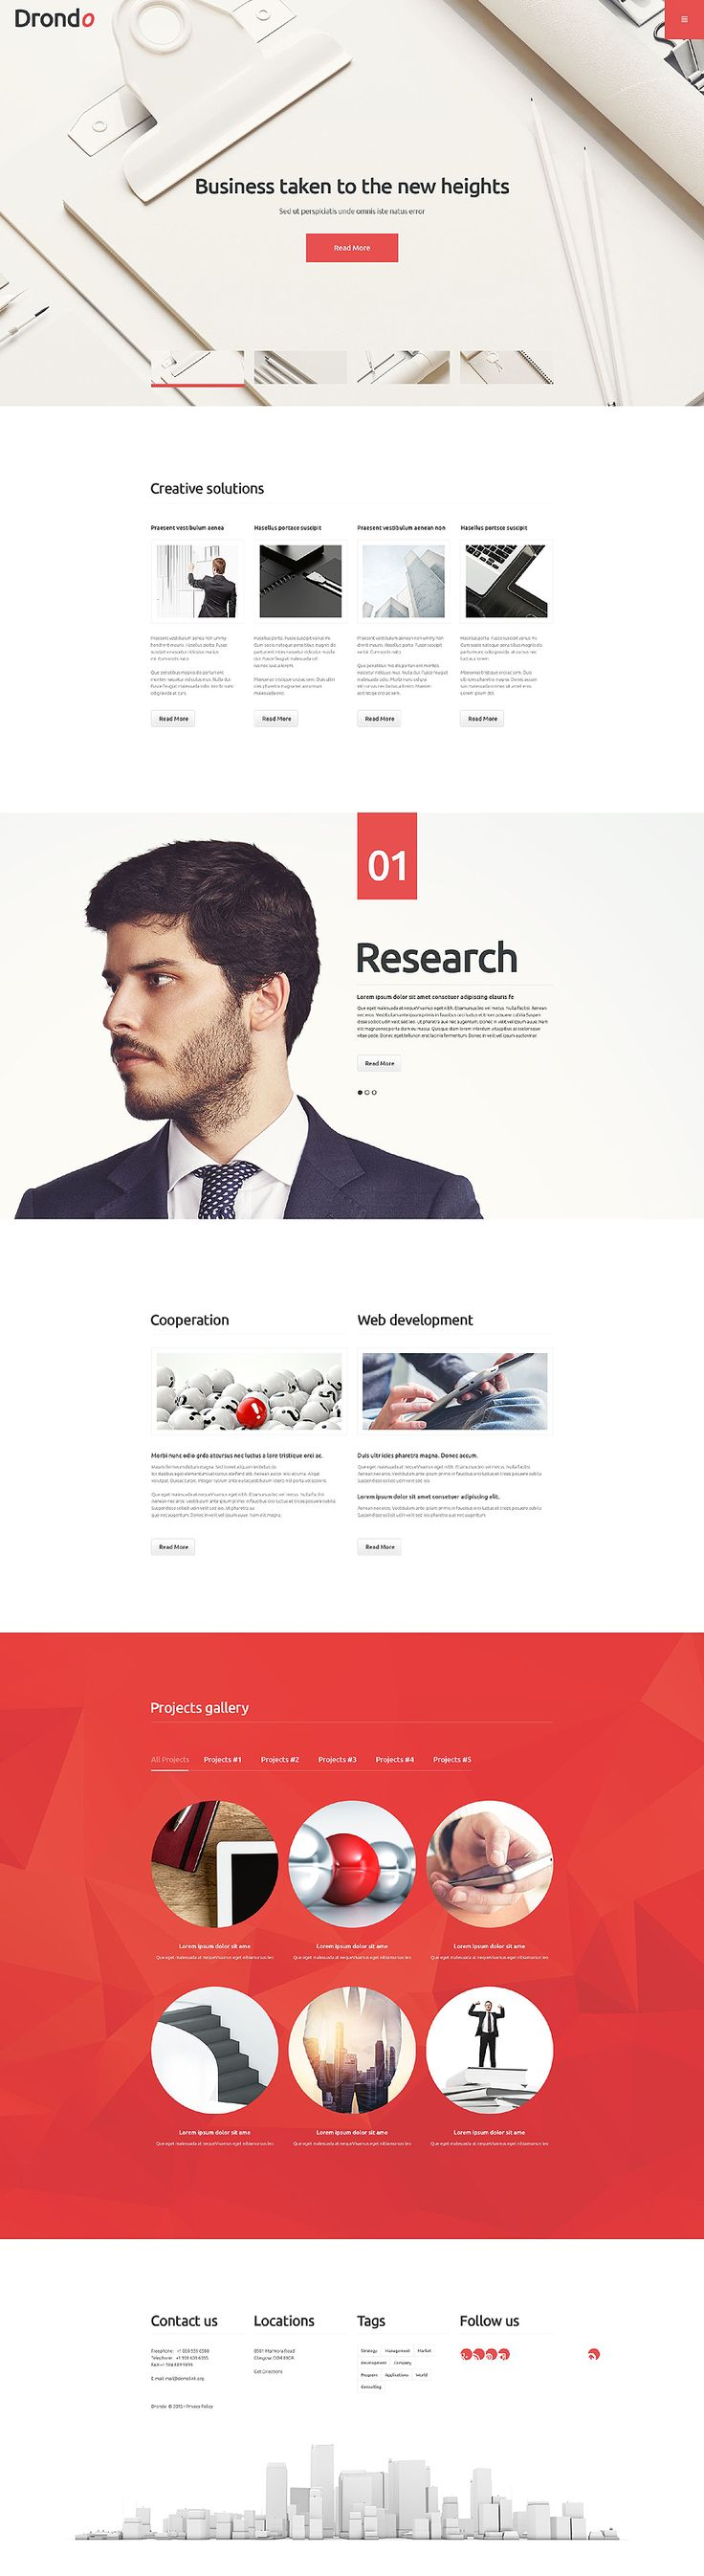 We've created a new #corporate #WordPress #theme for those who appreciate elegance and clean design. Check out the live demo!